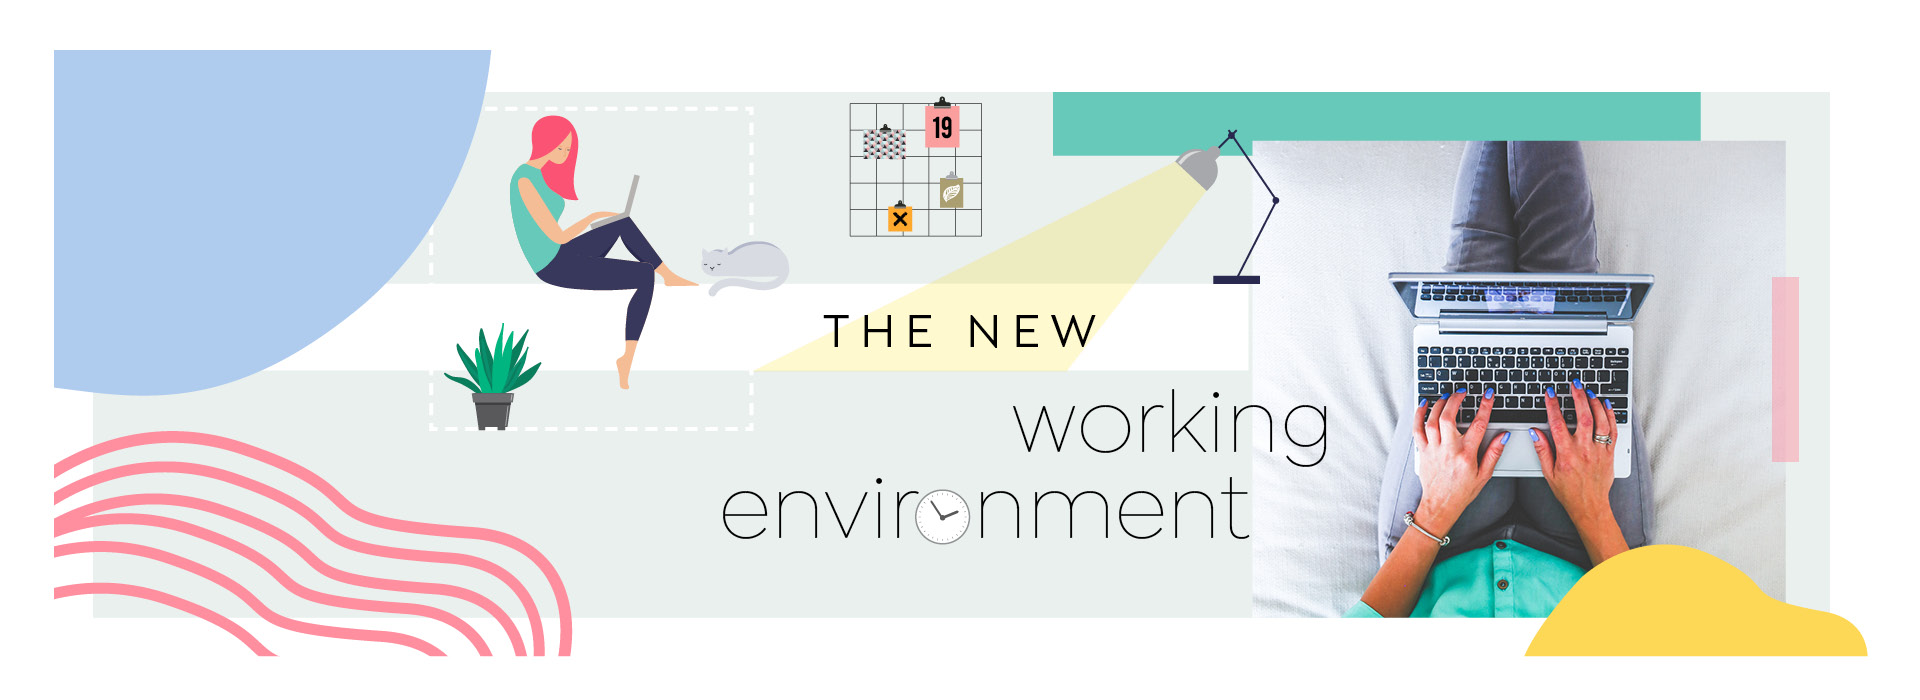 The new working environment caused by COVID-19 and how businesses are adapting